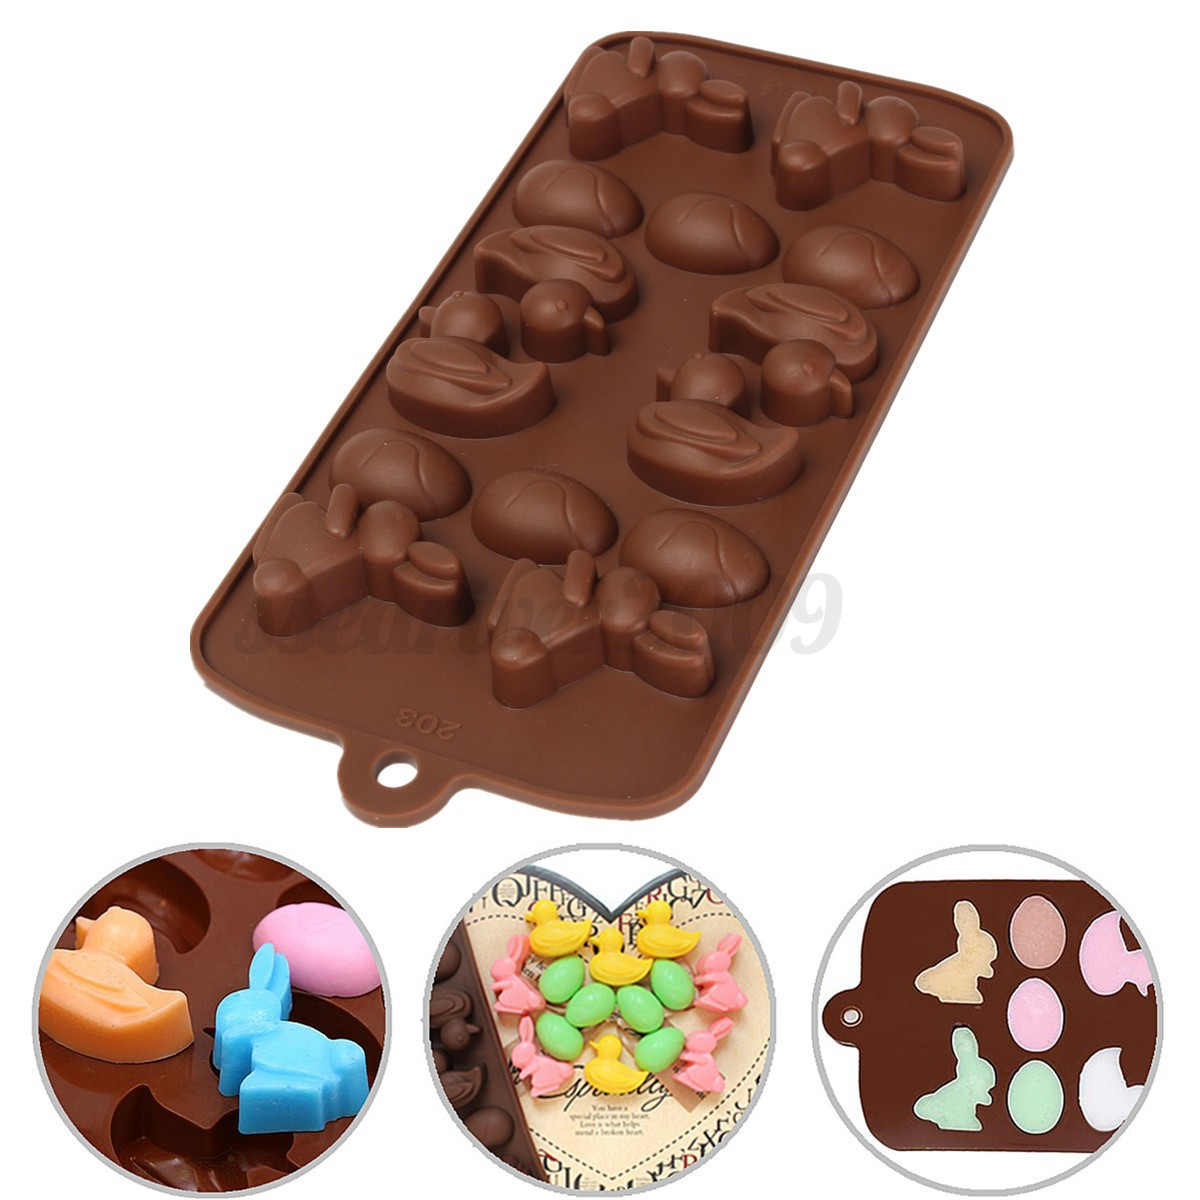 42 Best Dck Chocolate Molds Images On Pinterest: Easter Egg Bunny Duck Themed Silicone Mould For Chocolate